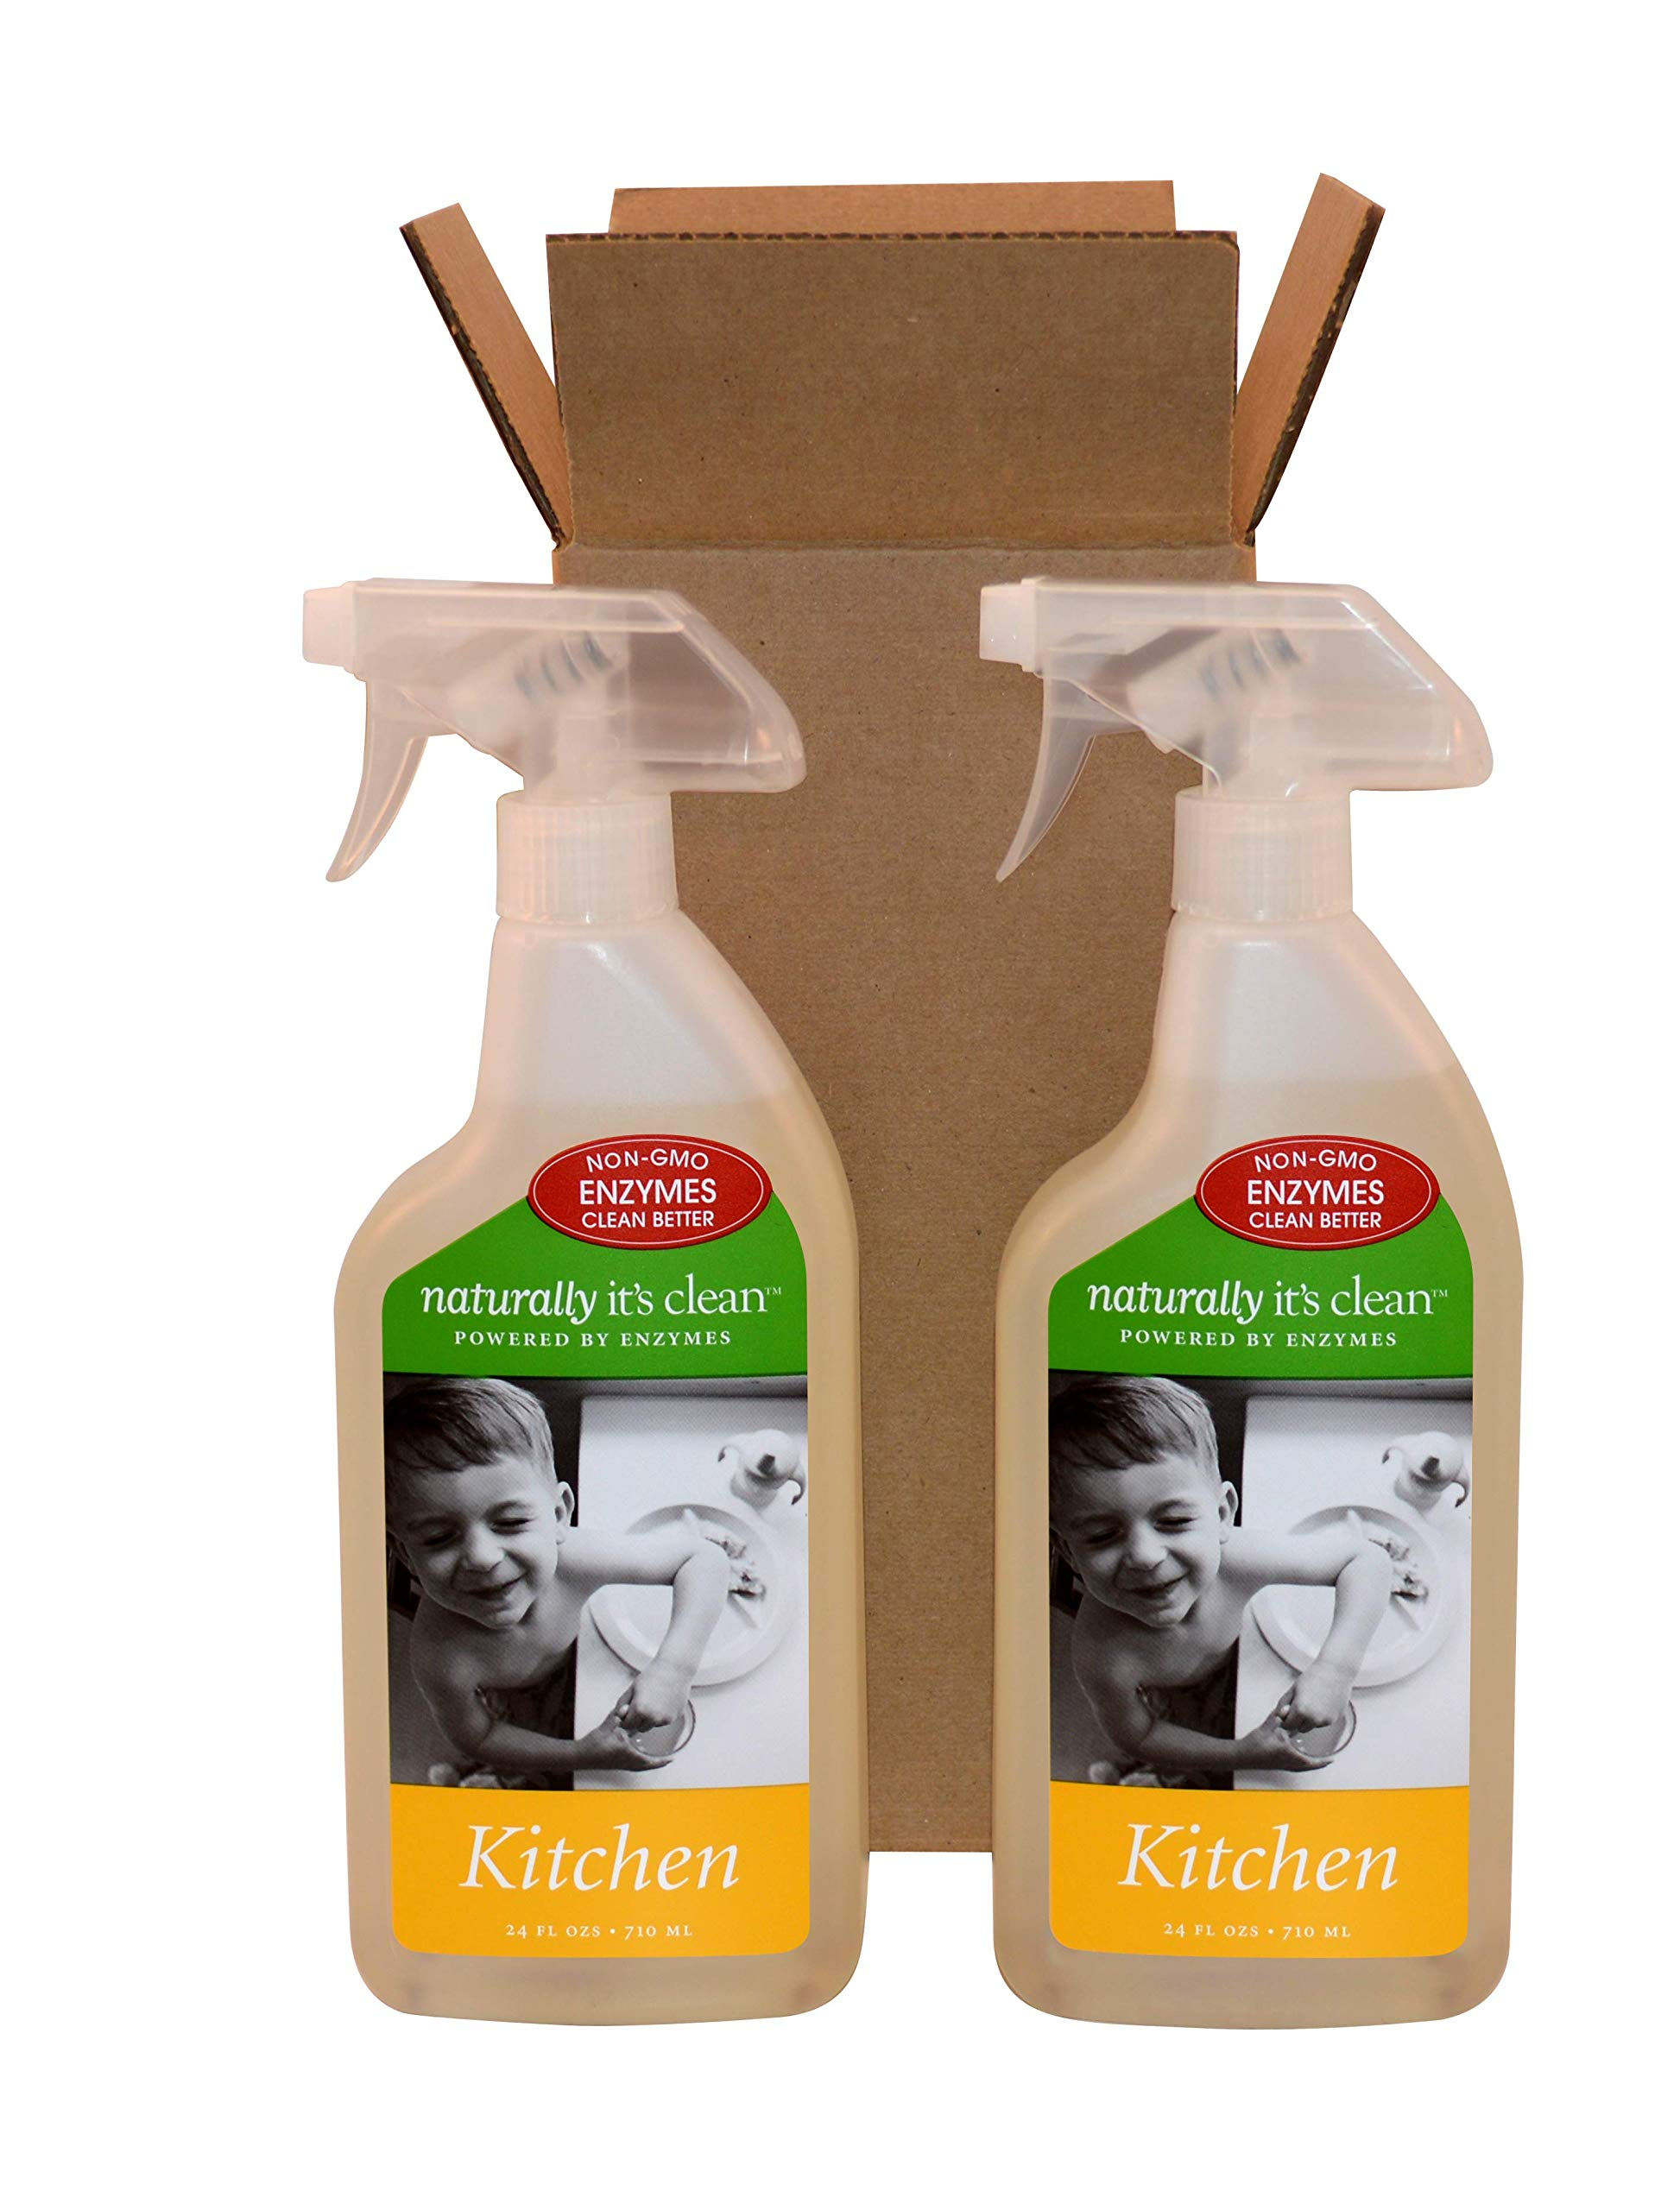 2-pack 24oz Naturally It's Clean Kitchen Cleaner;Enzyme Cleaner safely cleans all kitchen surfaces&removes fats, oils, grease&kitchen grime; Remove odors; Non-Toxic&ALL NATURAL, Pet SafeΧld Safe